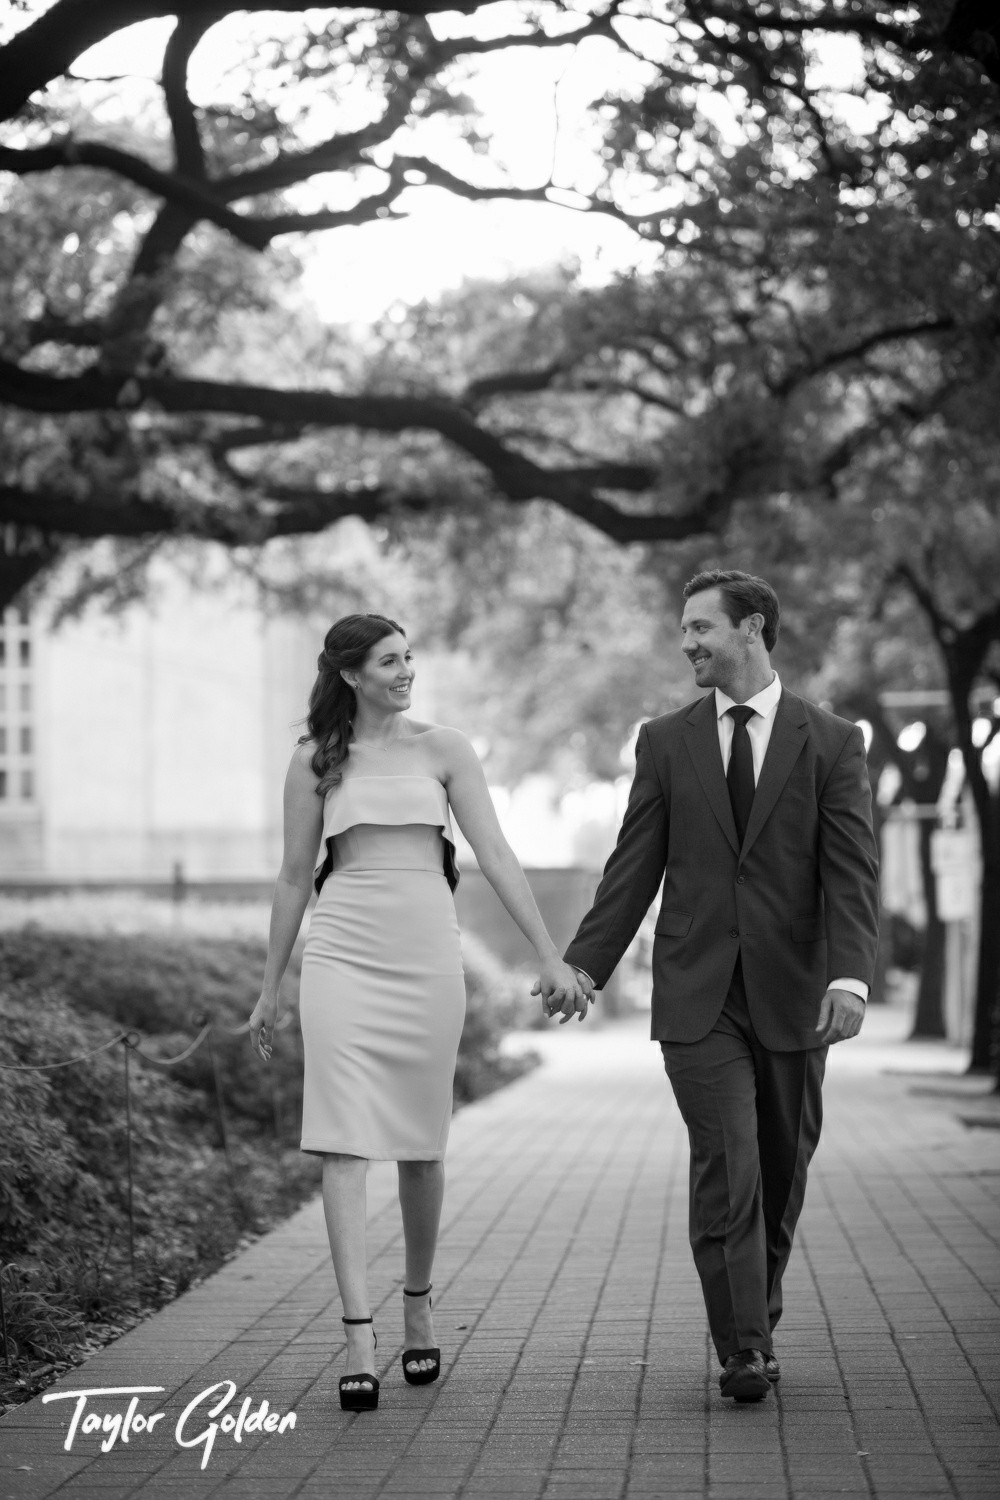 Houston Wedding Photographer Taylor Golden2.jpg